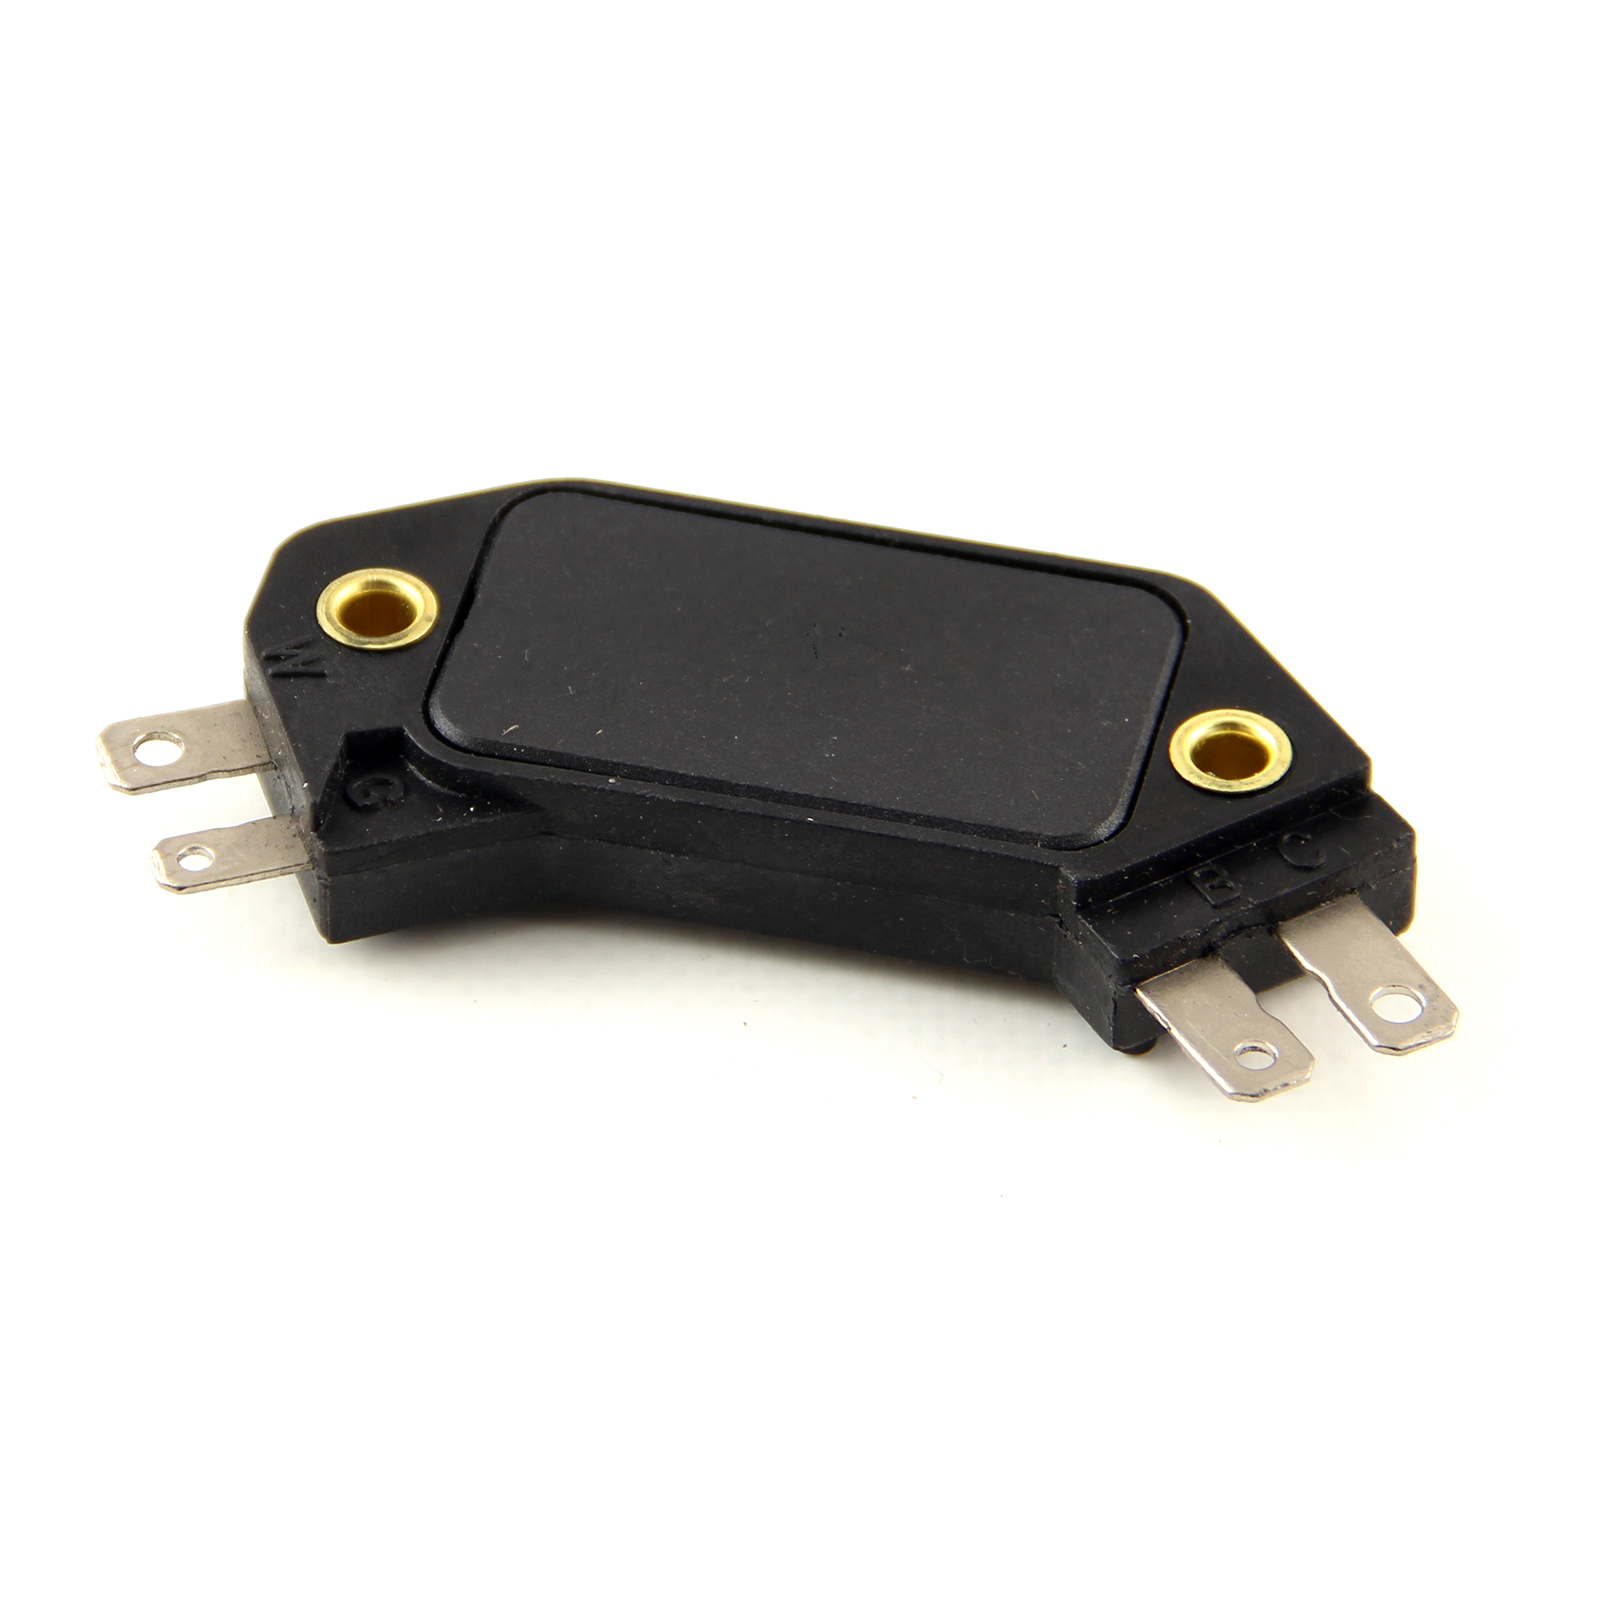 HEI Distributor 4 Pin Magnetic Pickup Ignition Control Module (Suits Pc6000)